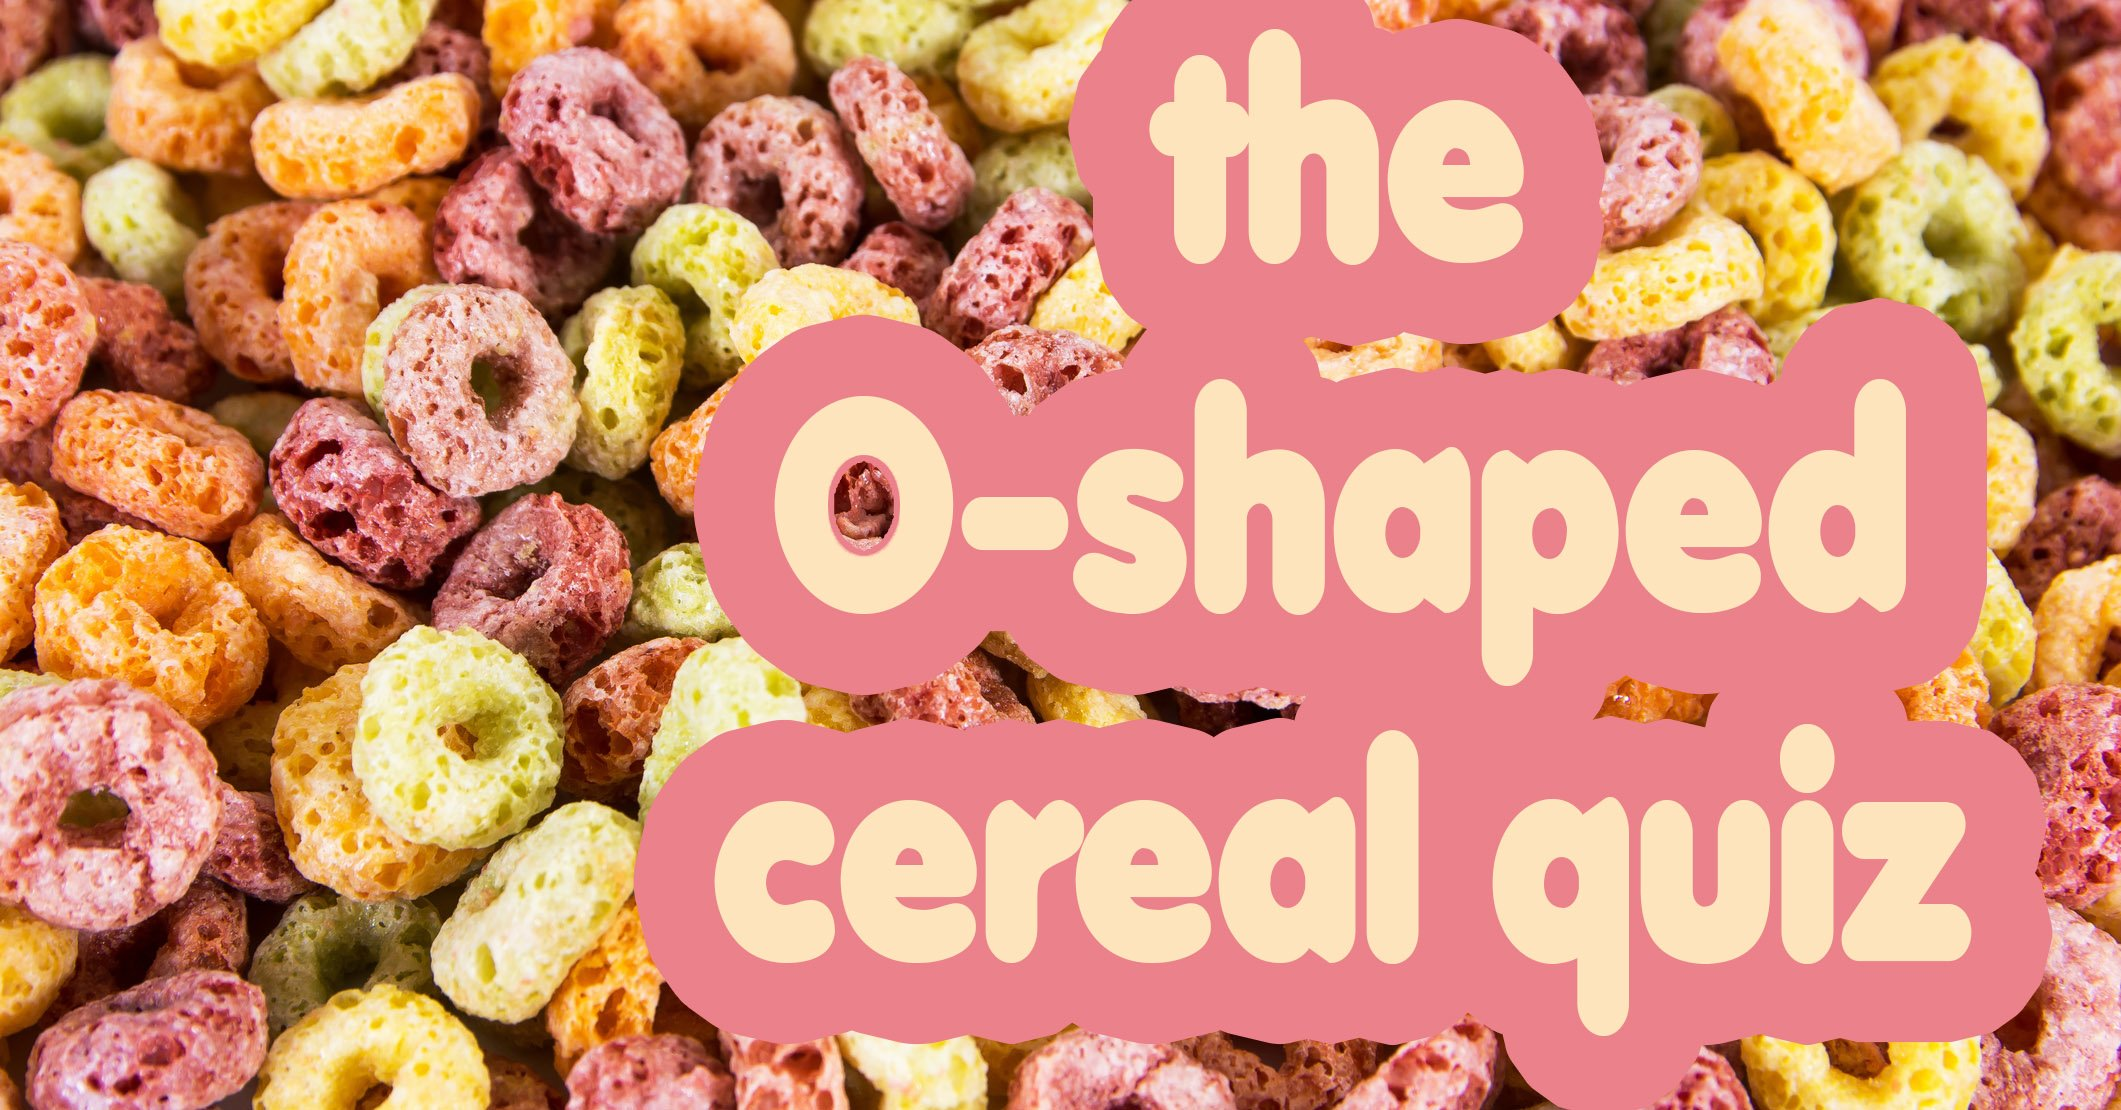 Can you guess the shape of these discontinued cereals?